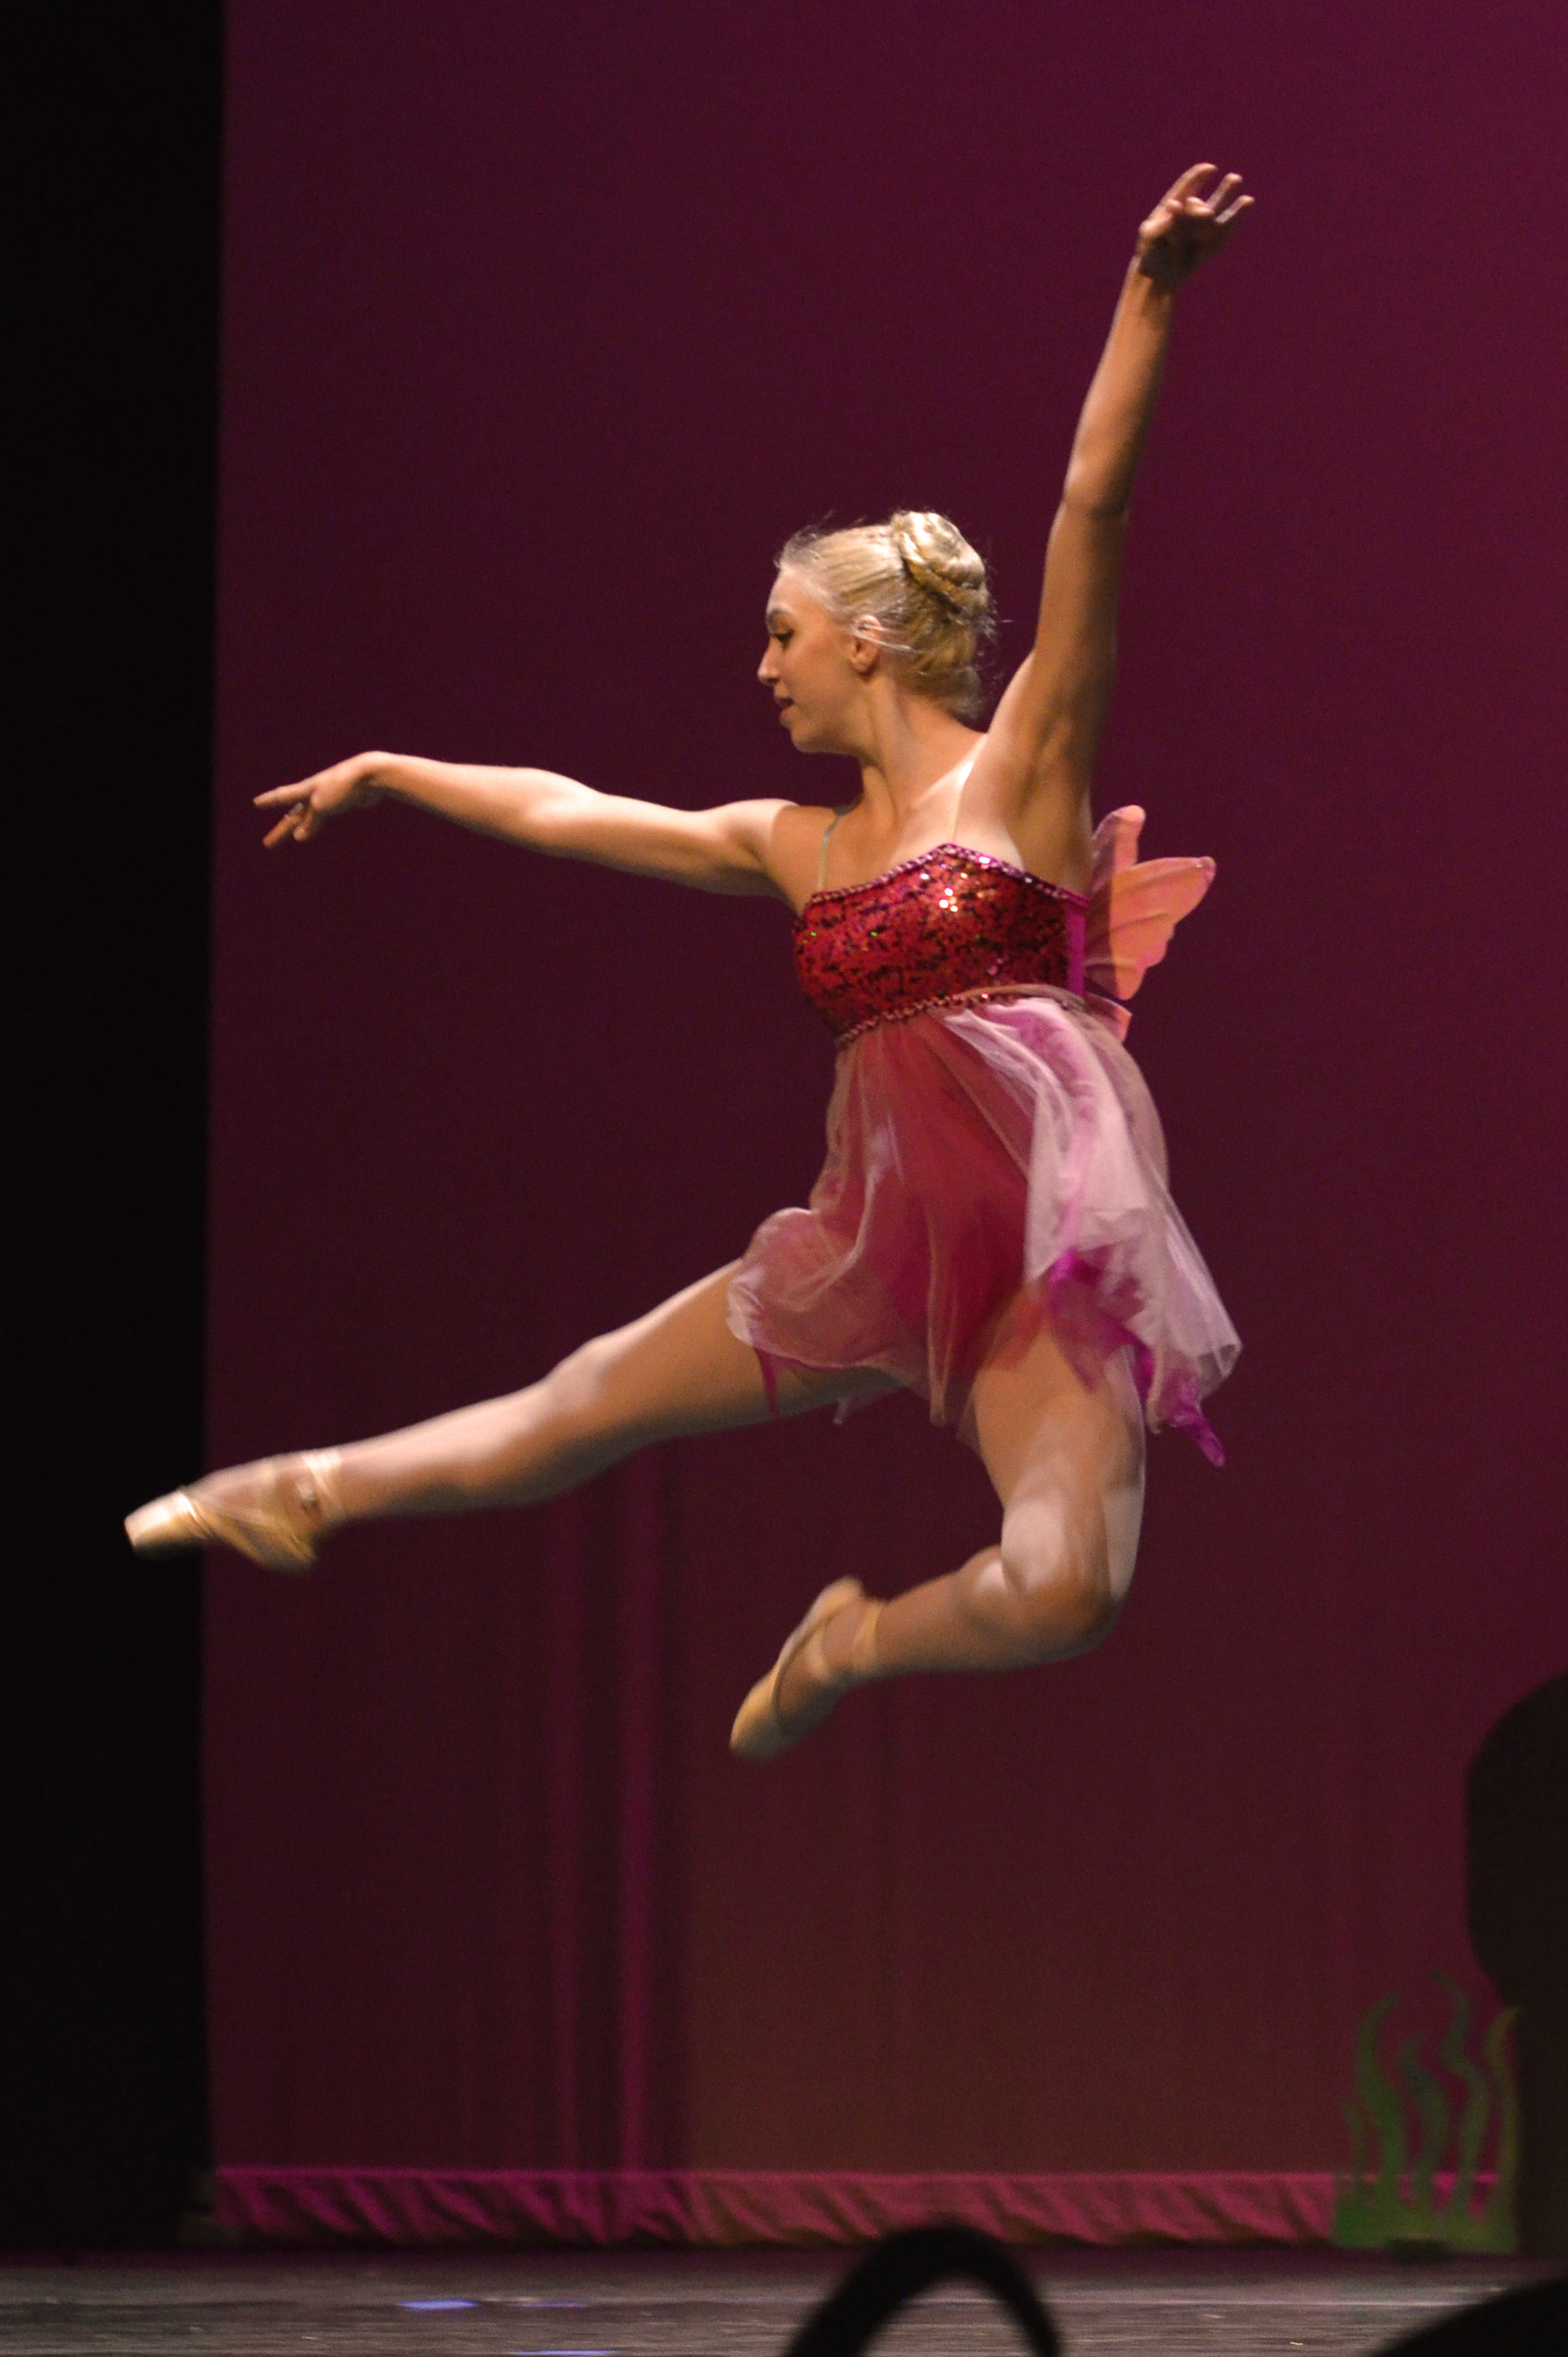 Students receive Pre-professional ballet and dance training at The Dance Element